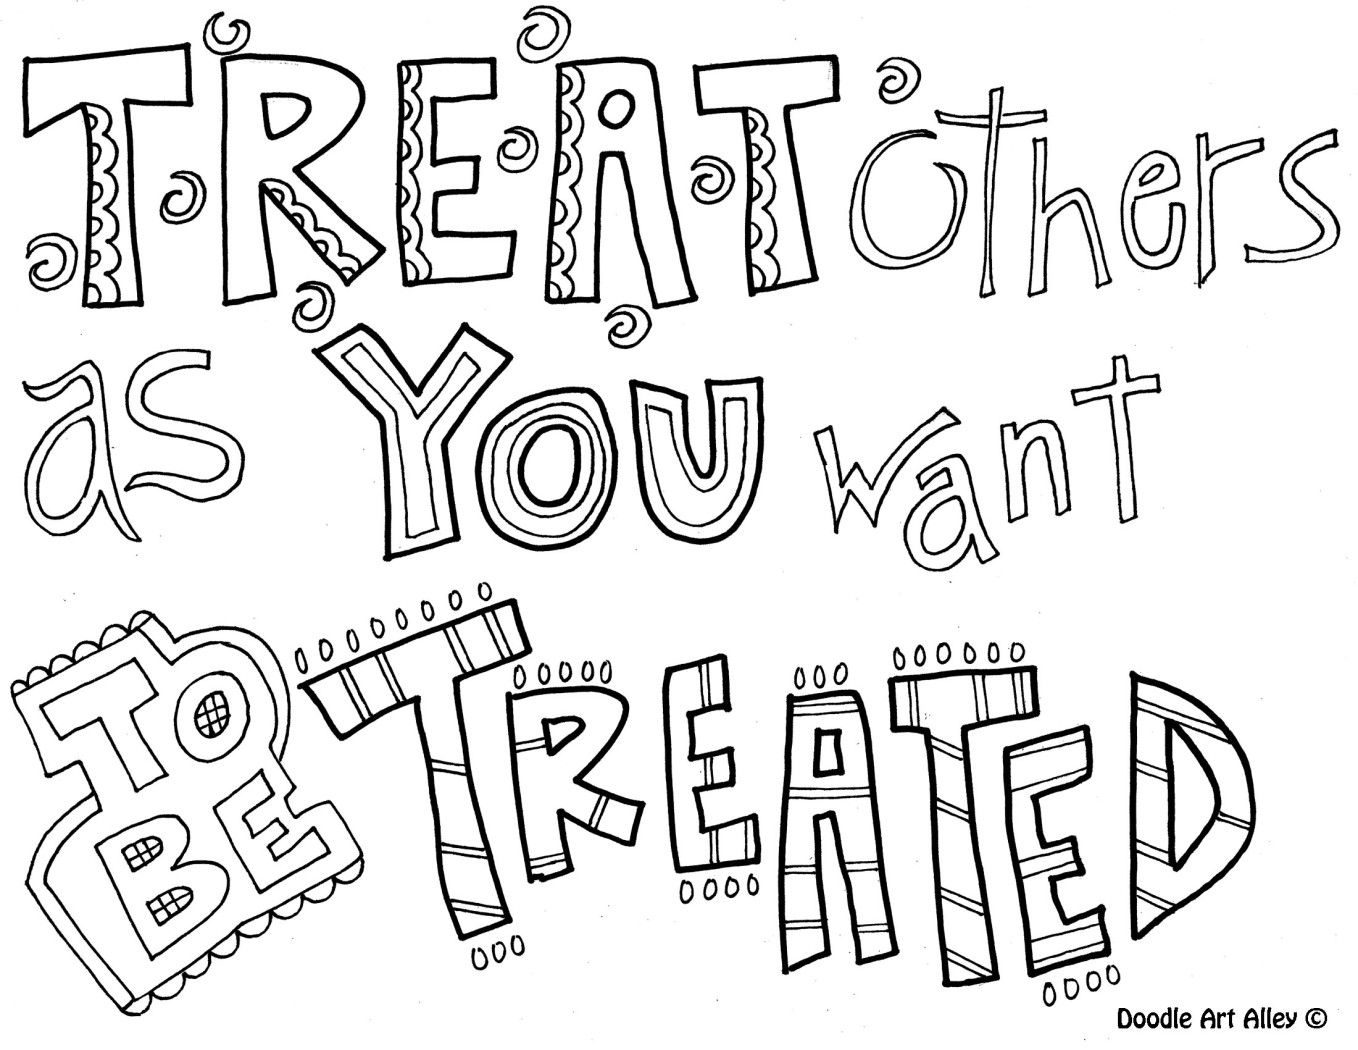 Quotes coloring pages to print - Quote Coloring Pages From Doodle Art Alley